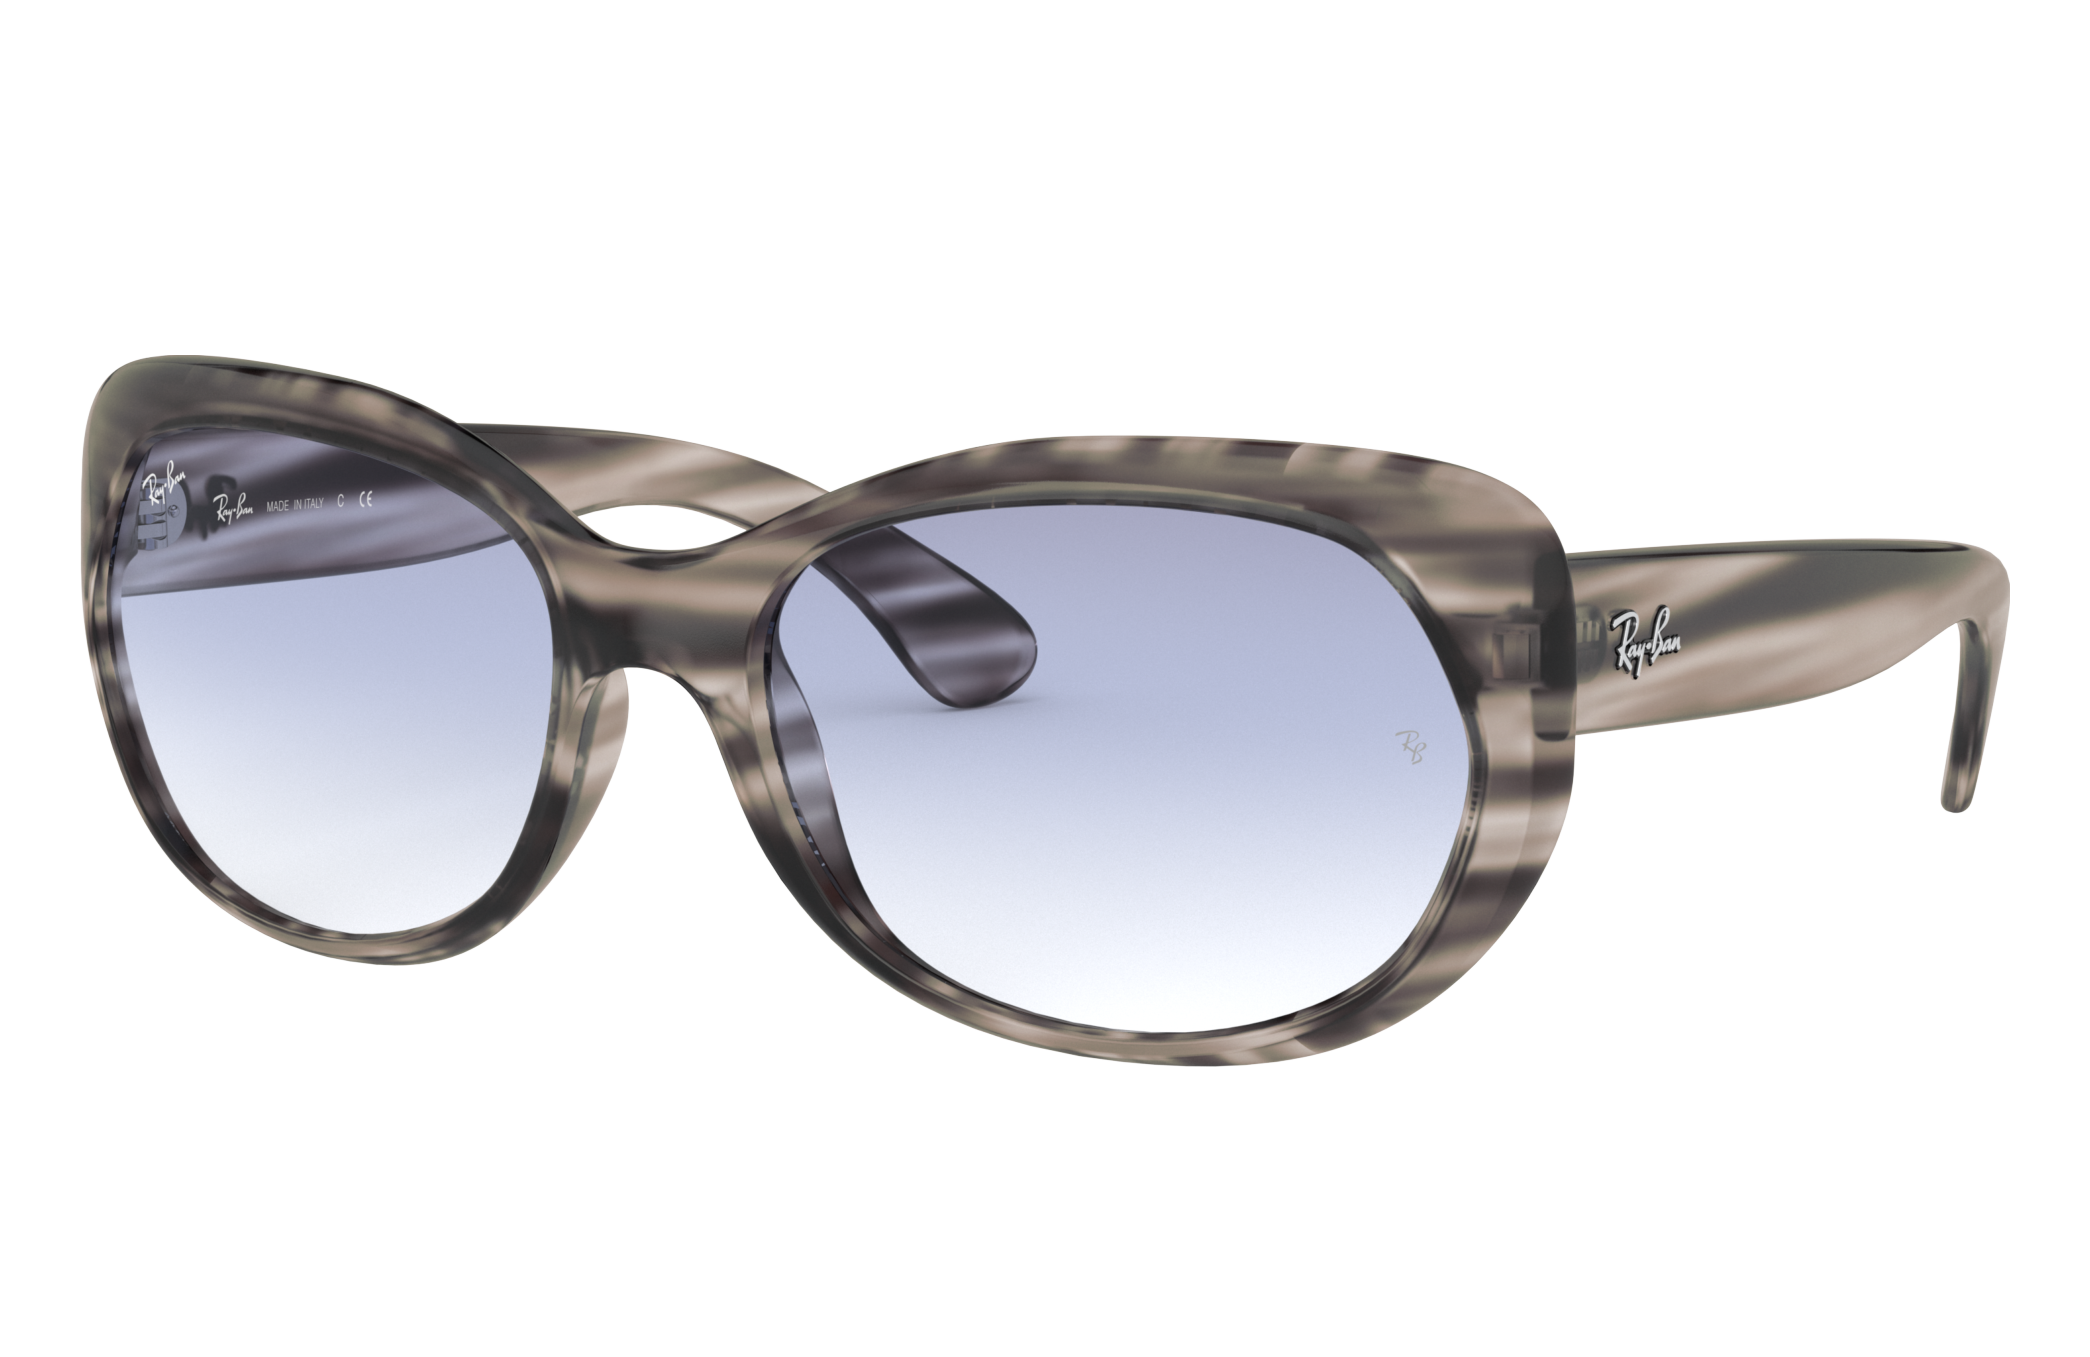 Ray-Ban Rb4325 Striped Grey, Blue Lenses - RB4325